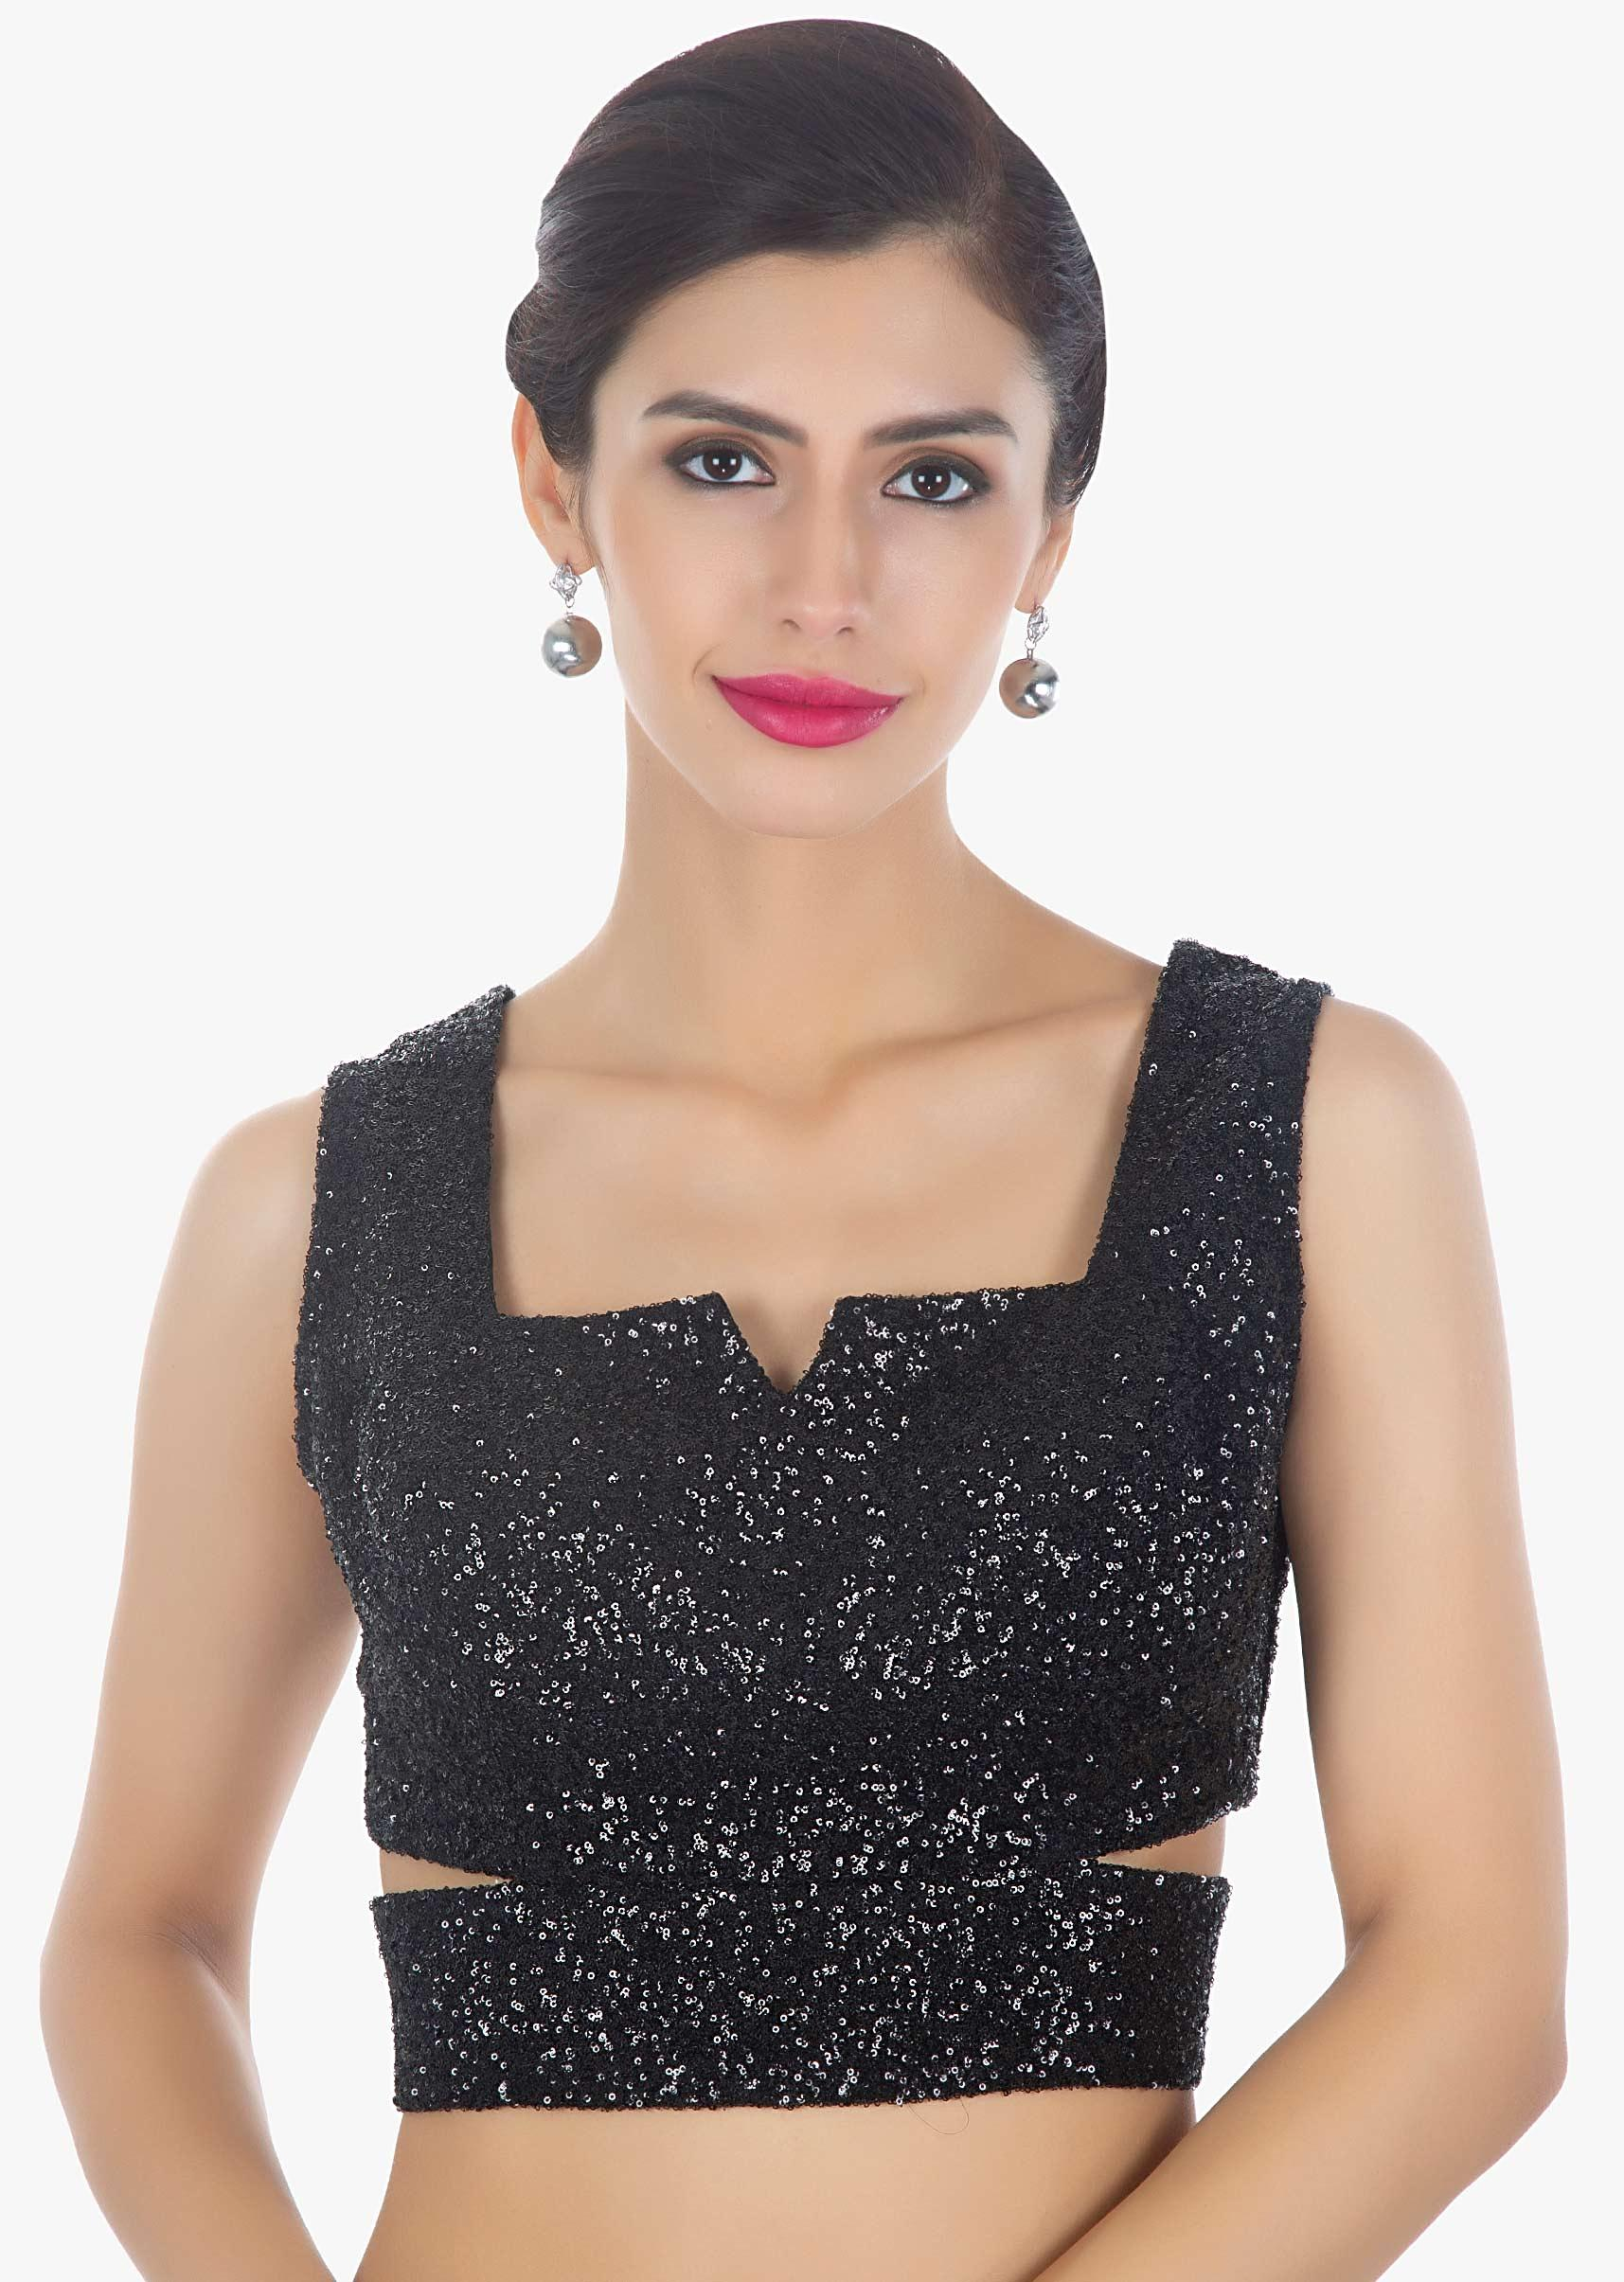 Black sequins blouse designed with side cut outs